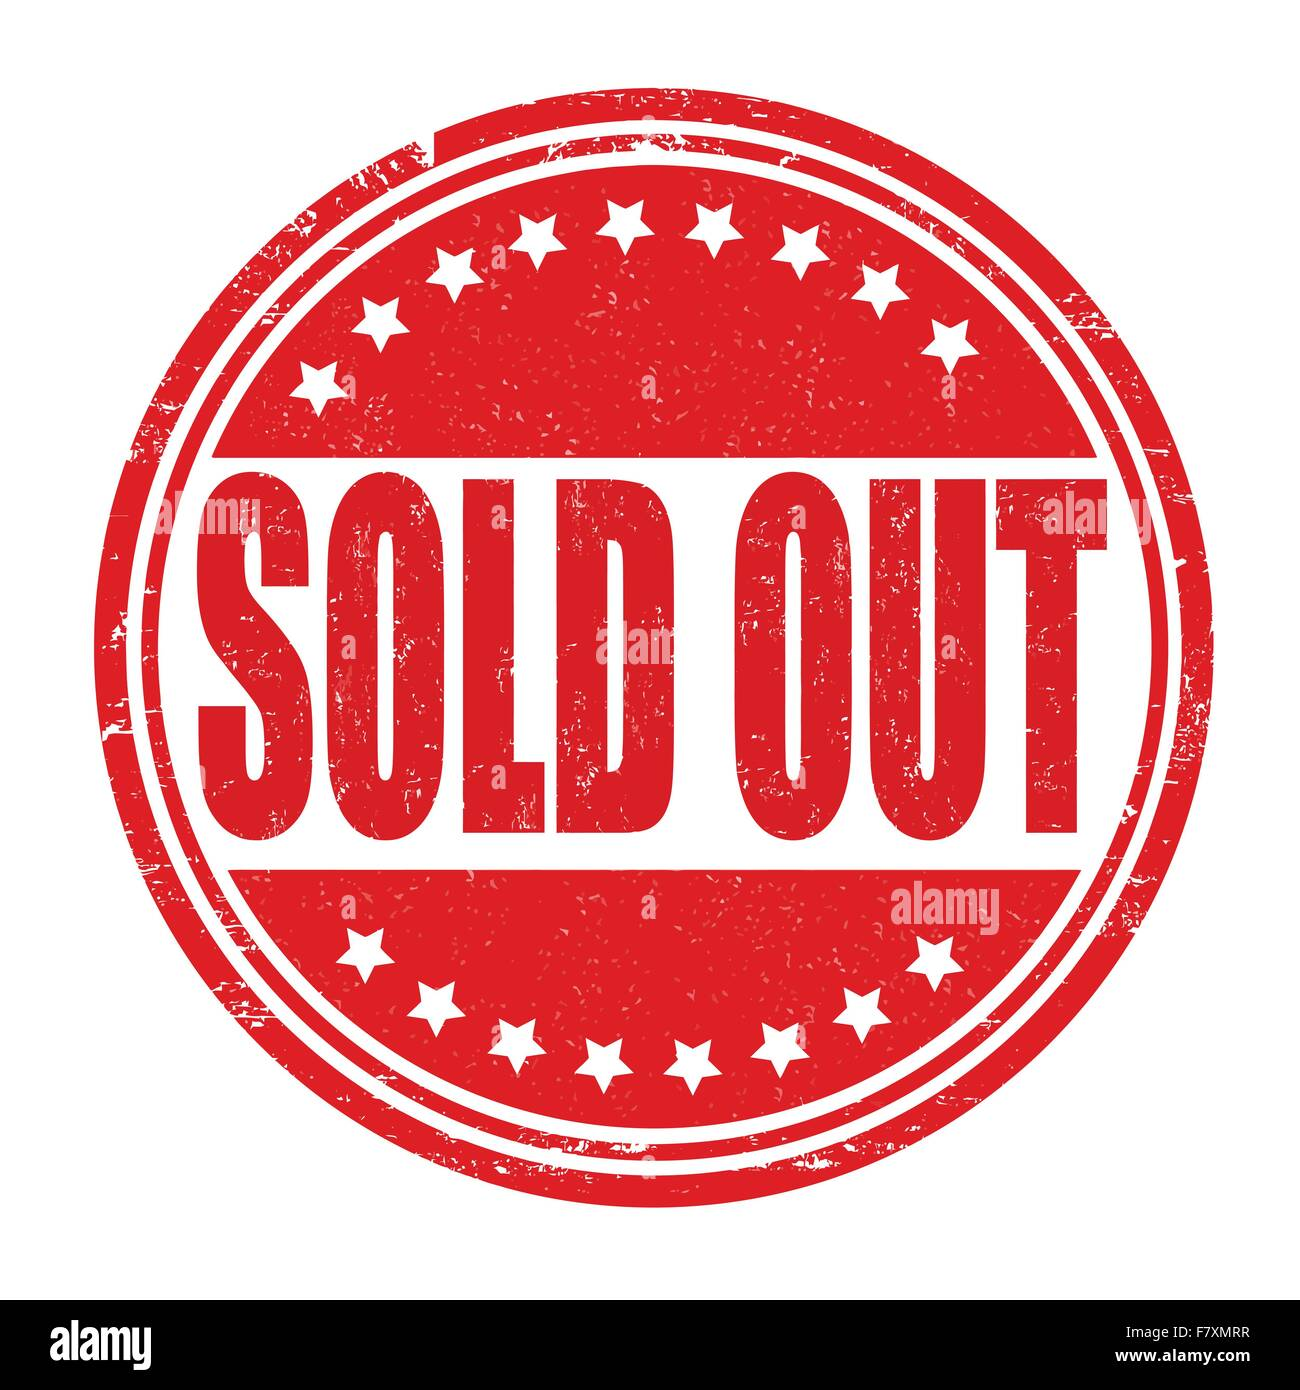 Sold out stamp - Stock Image